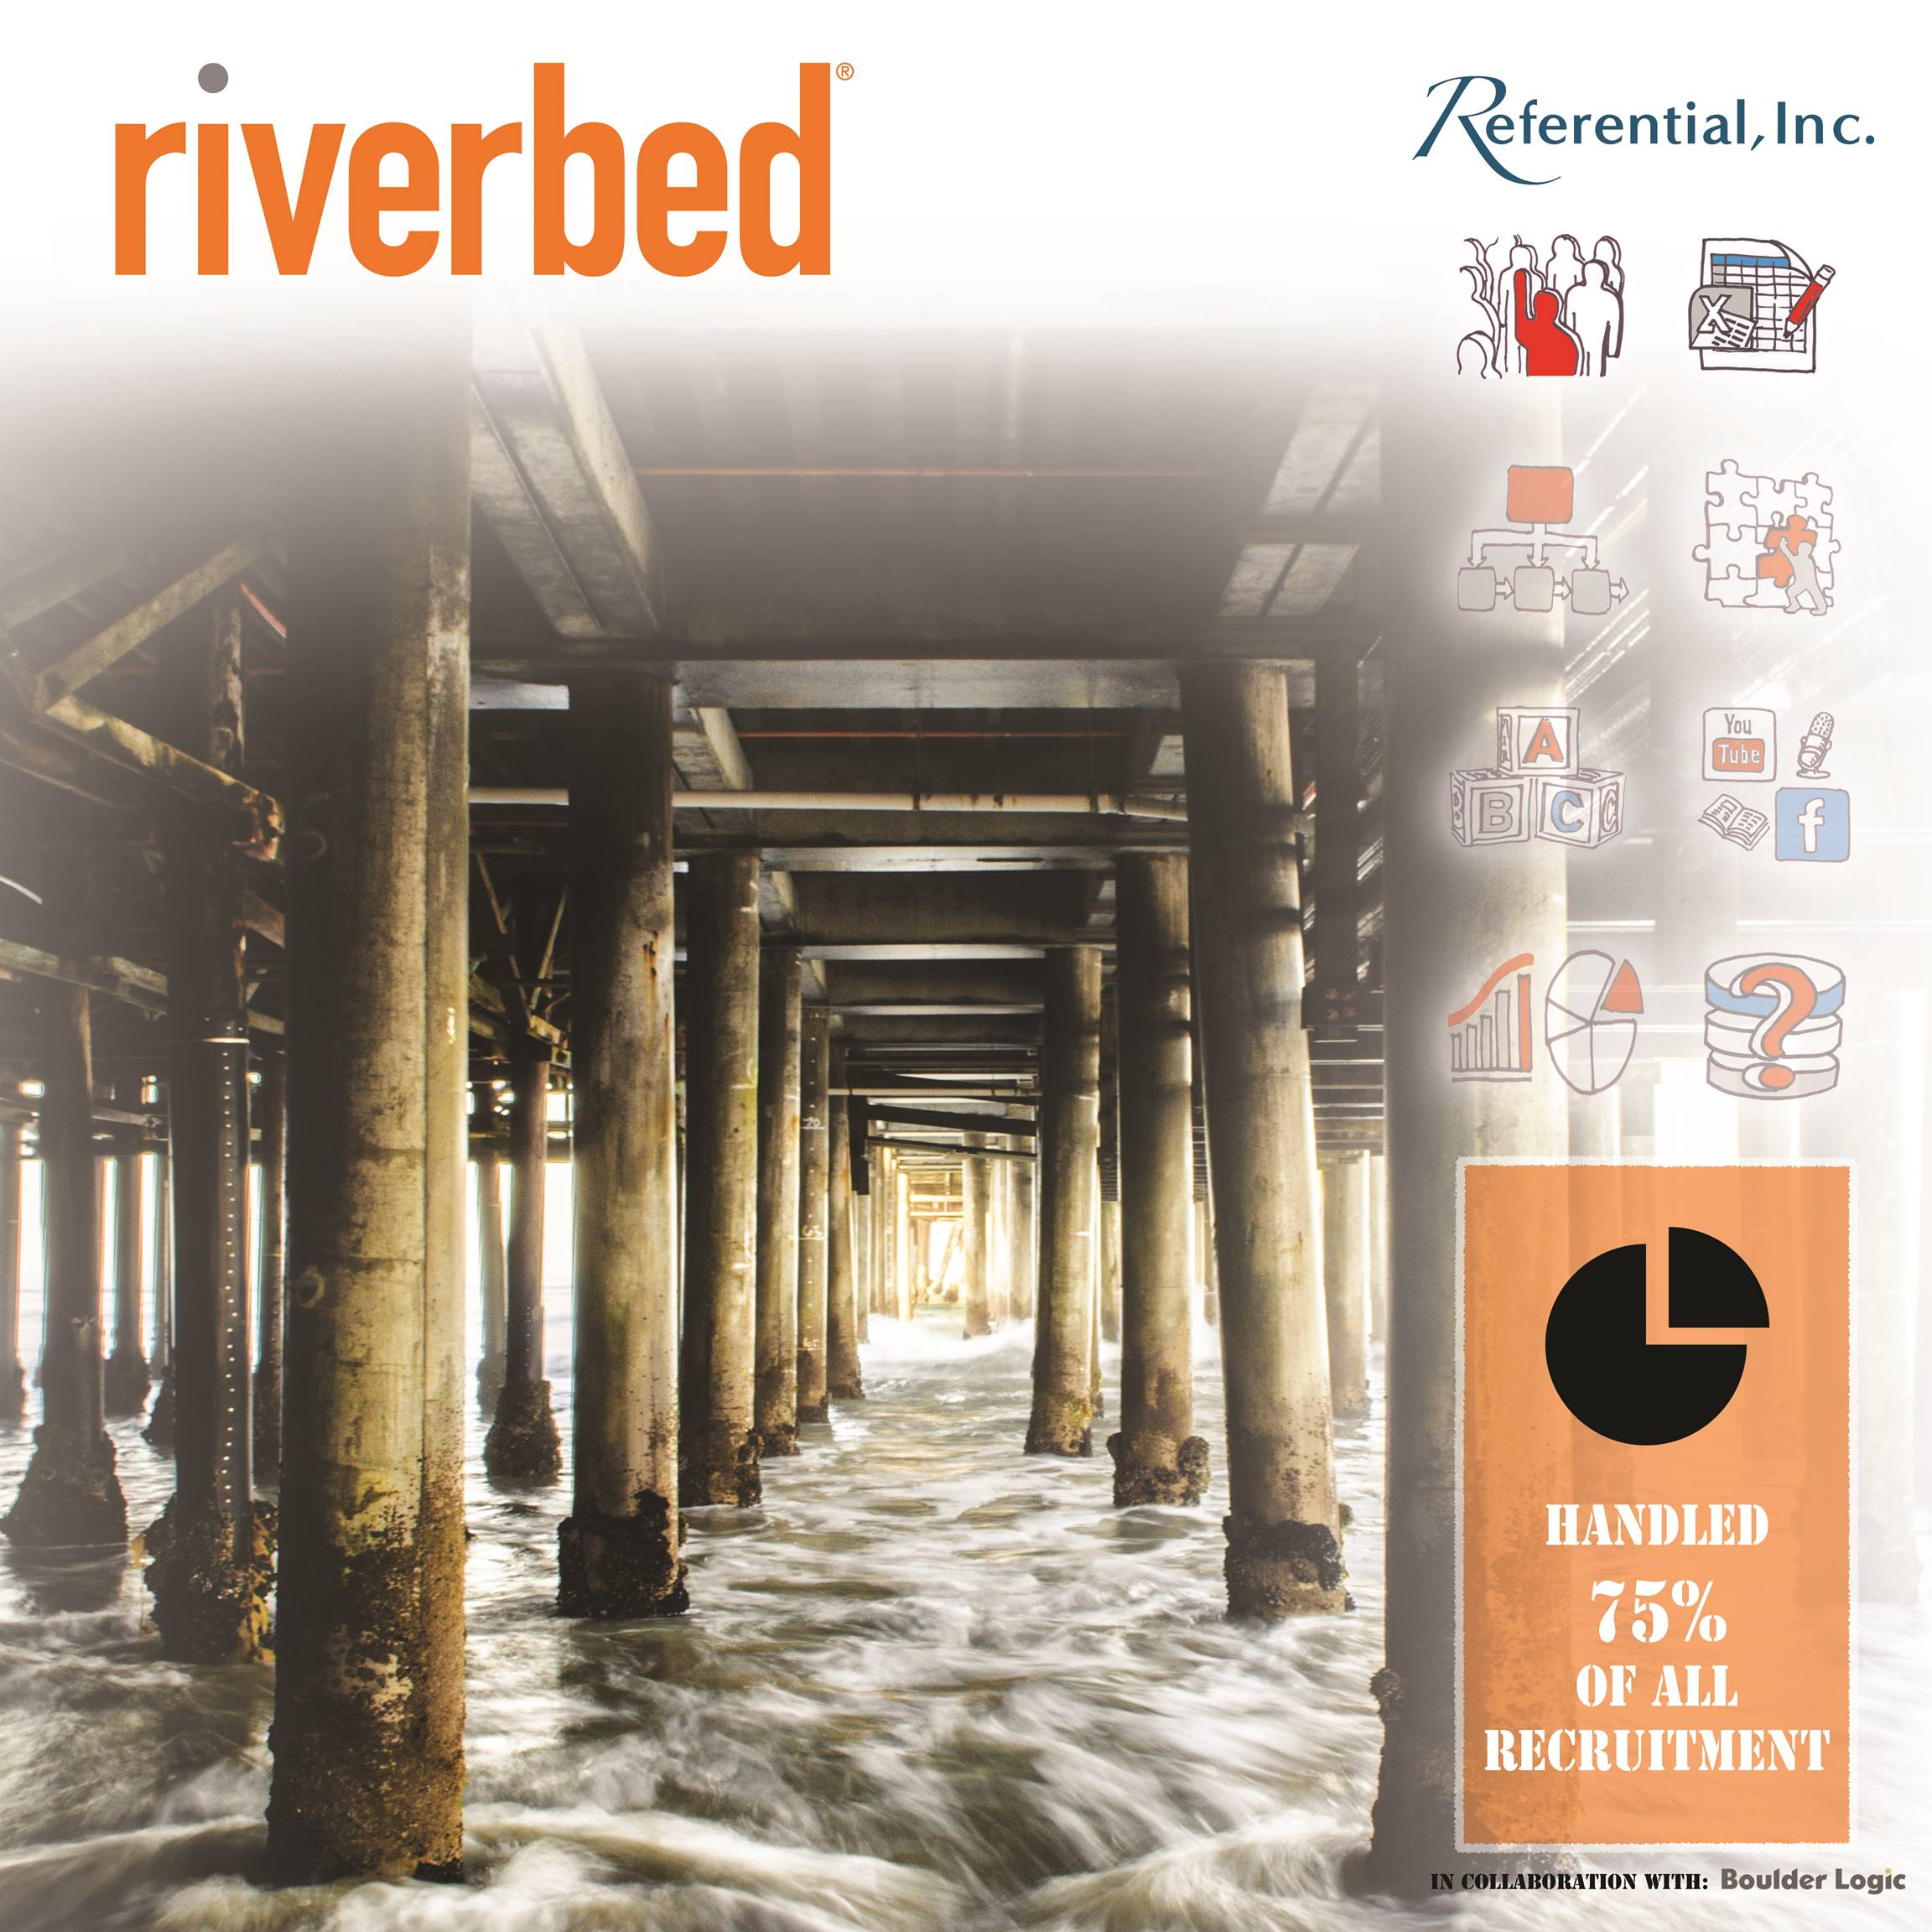 Riverbed in PPT for printing.jpg